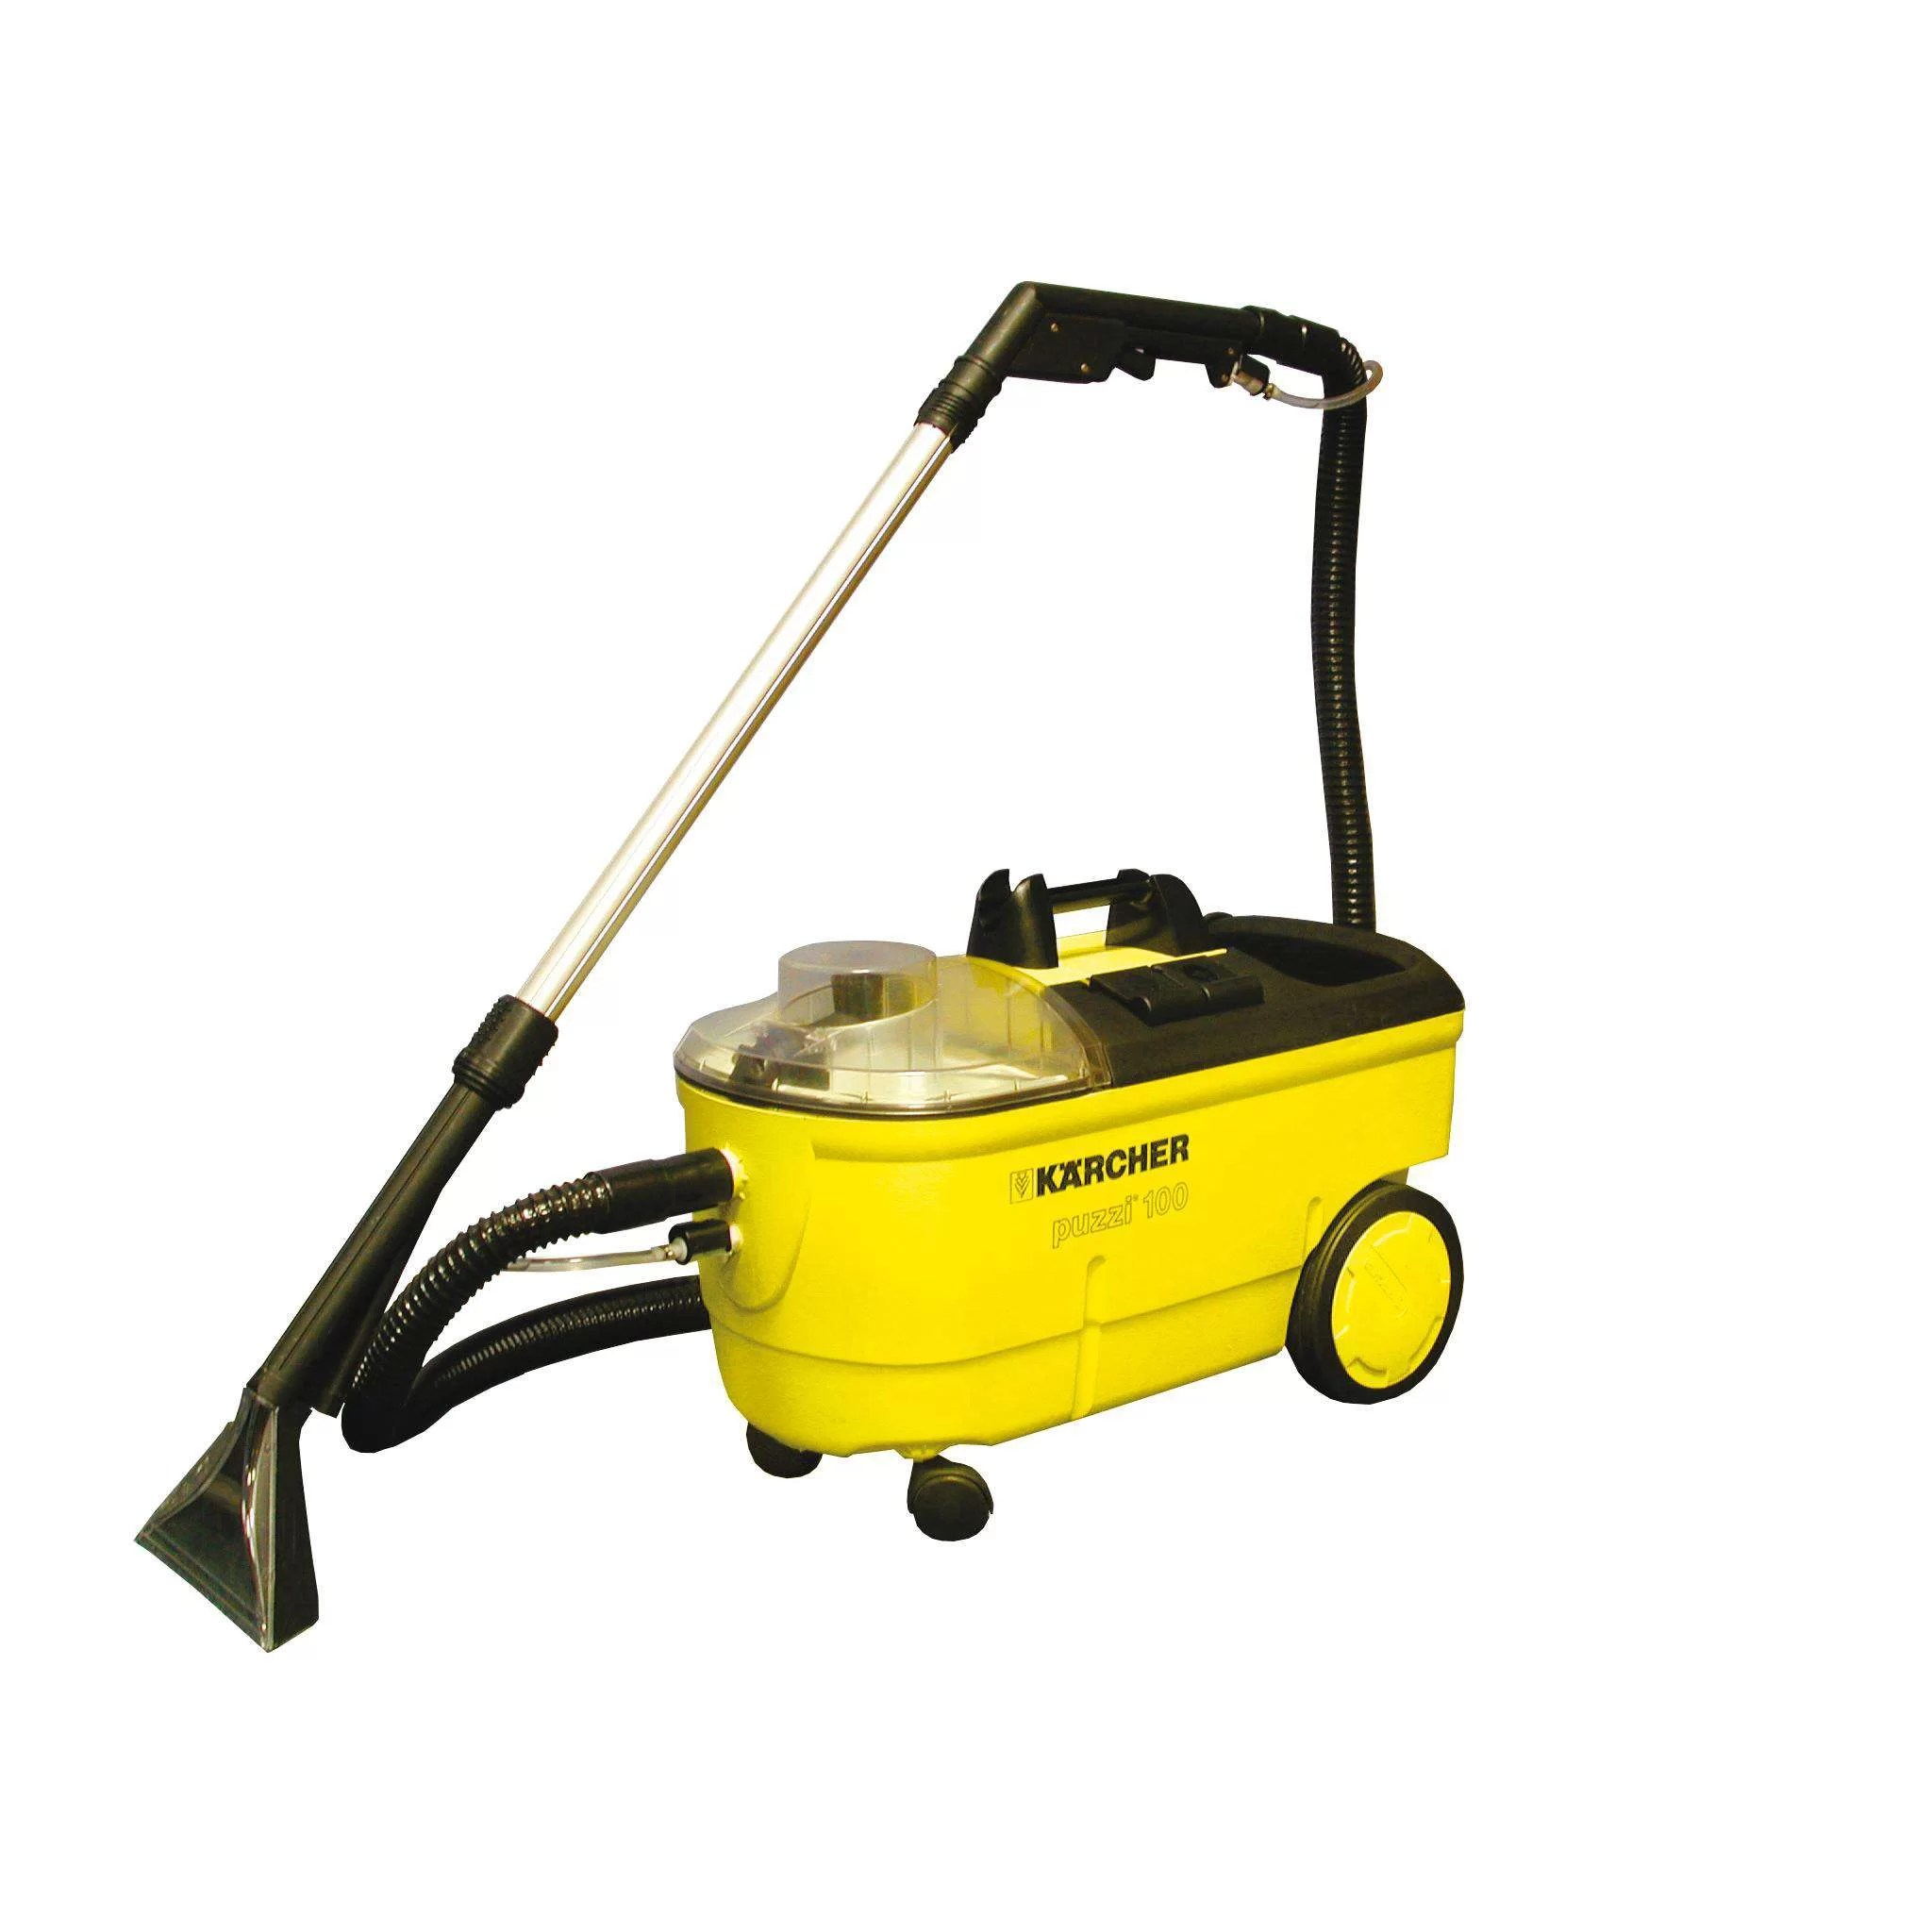 sofa cleaning machine hire dark green leather sectional equipment domestic and commercial archives